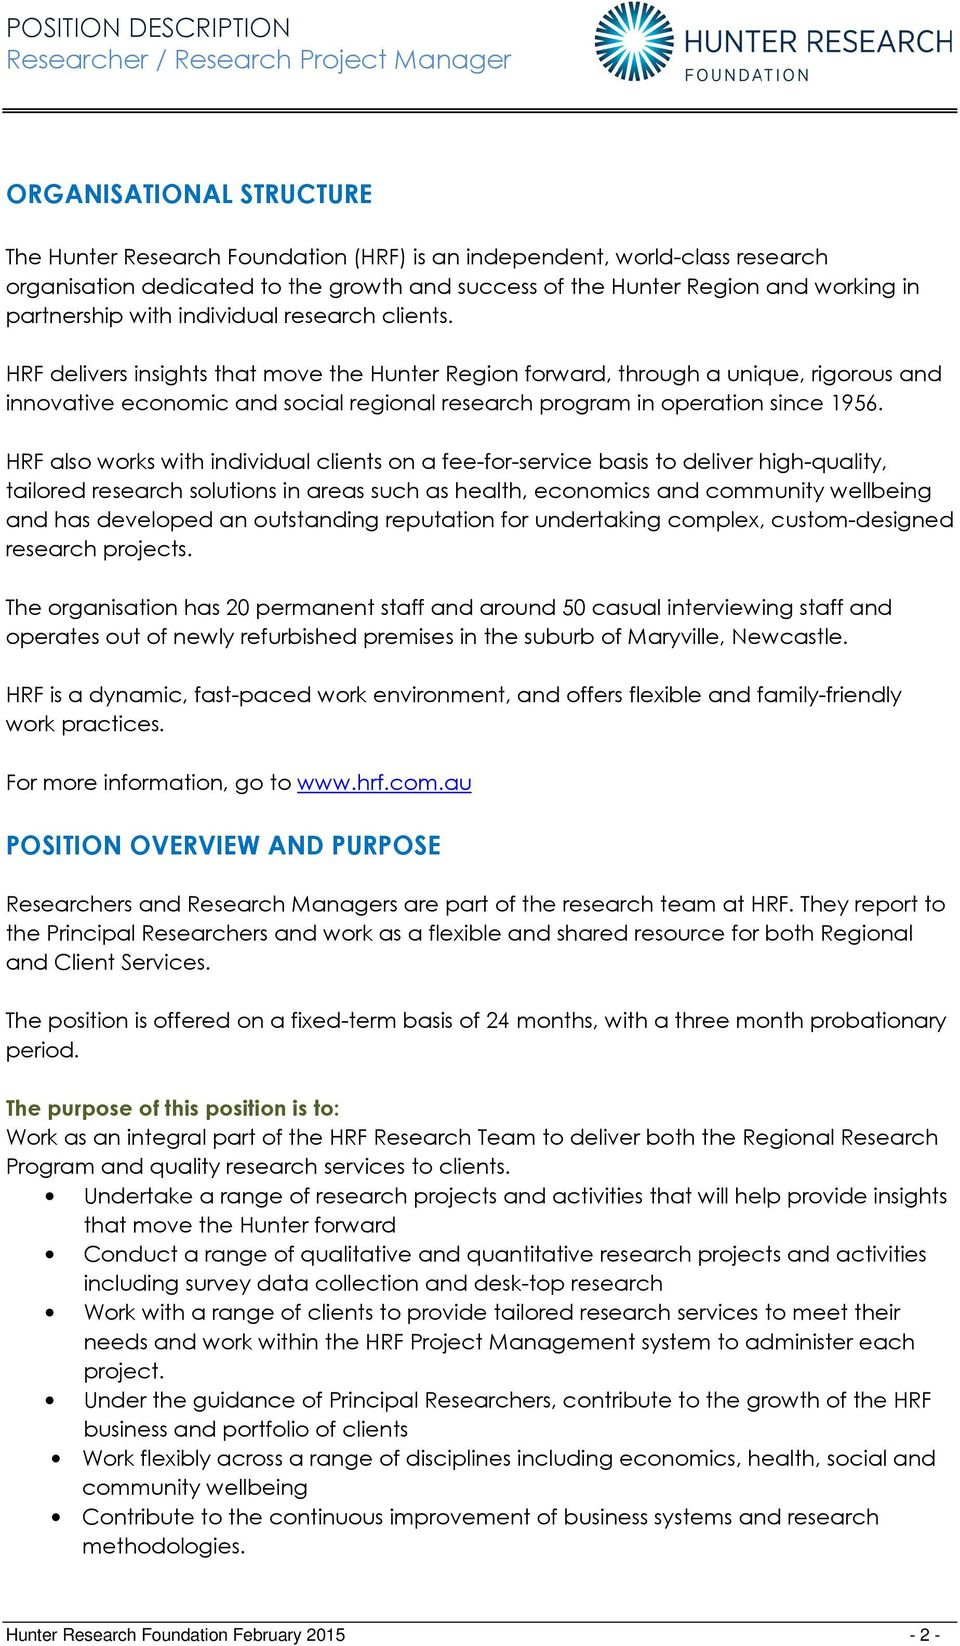 HRF delivers insights that move the Hunter Region forward, through a unique, rigorous and innovative economic and social regional research program in operation since 1956.